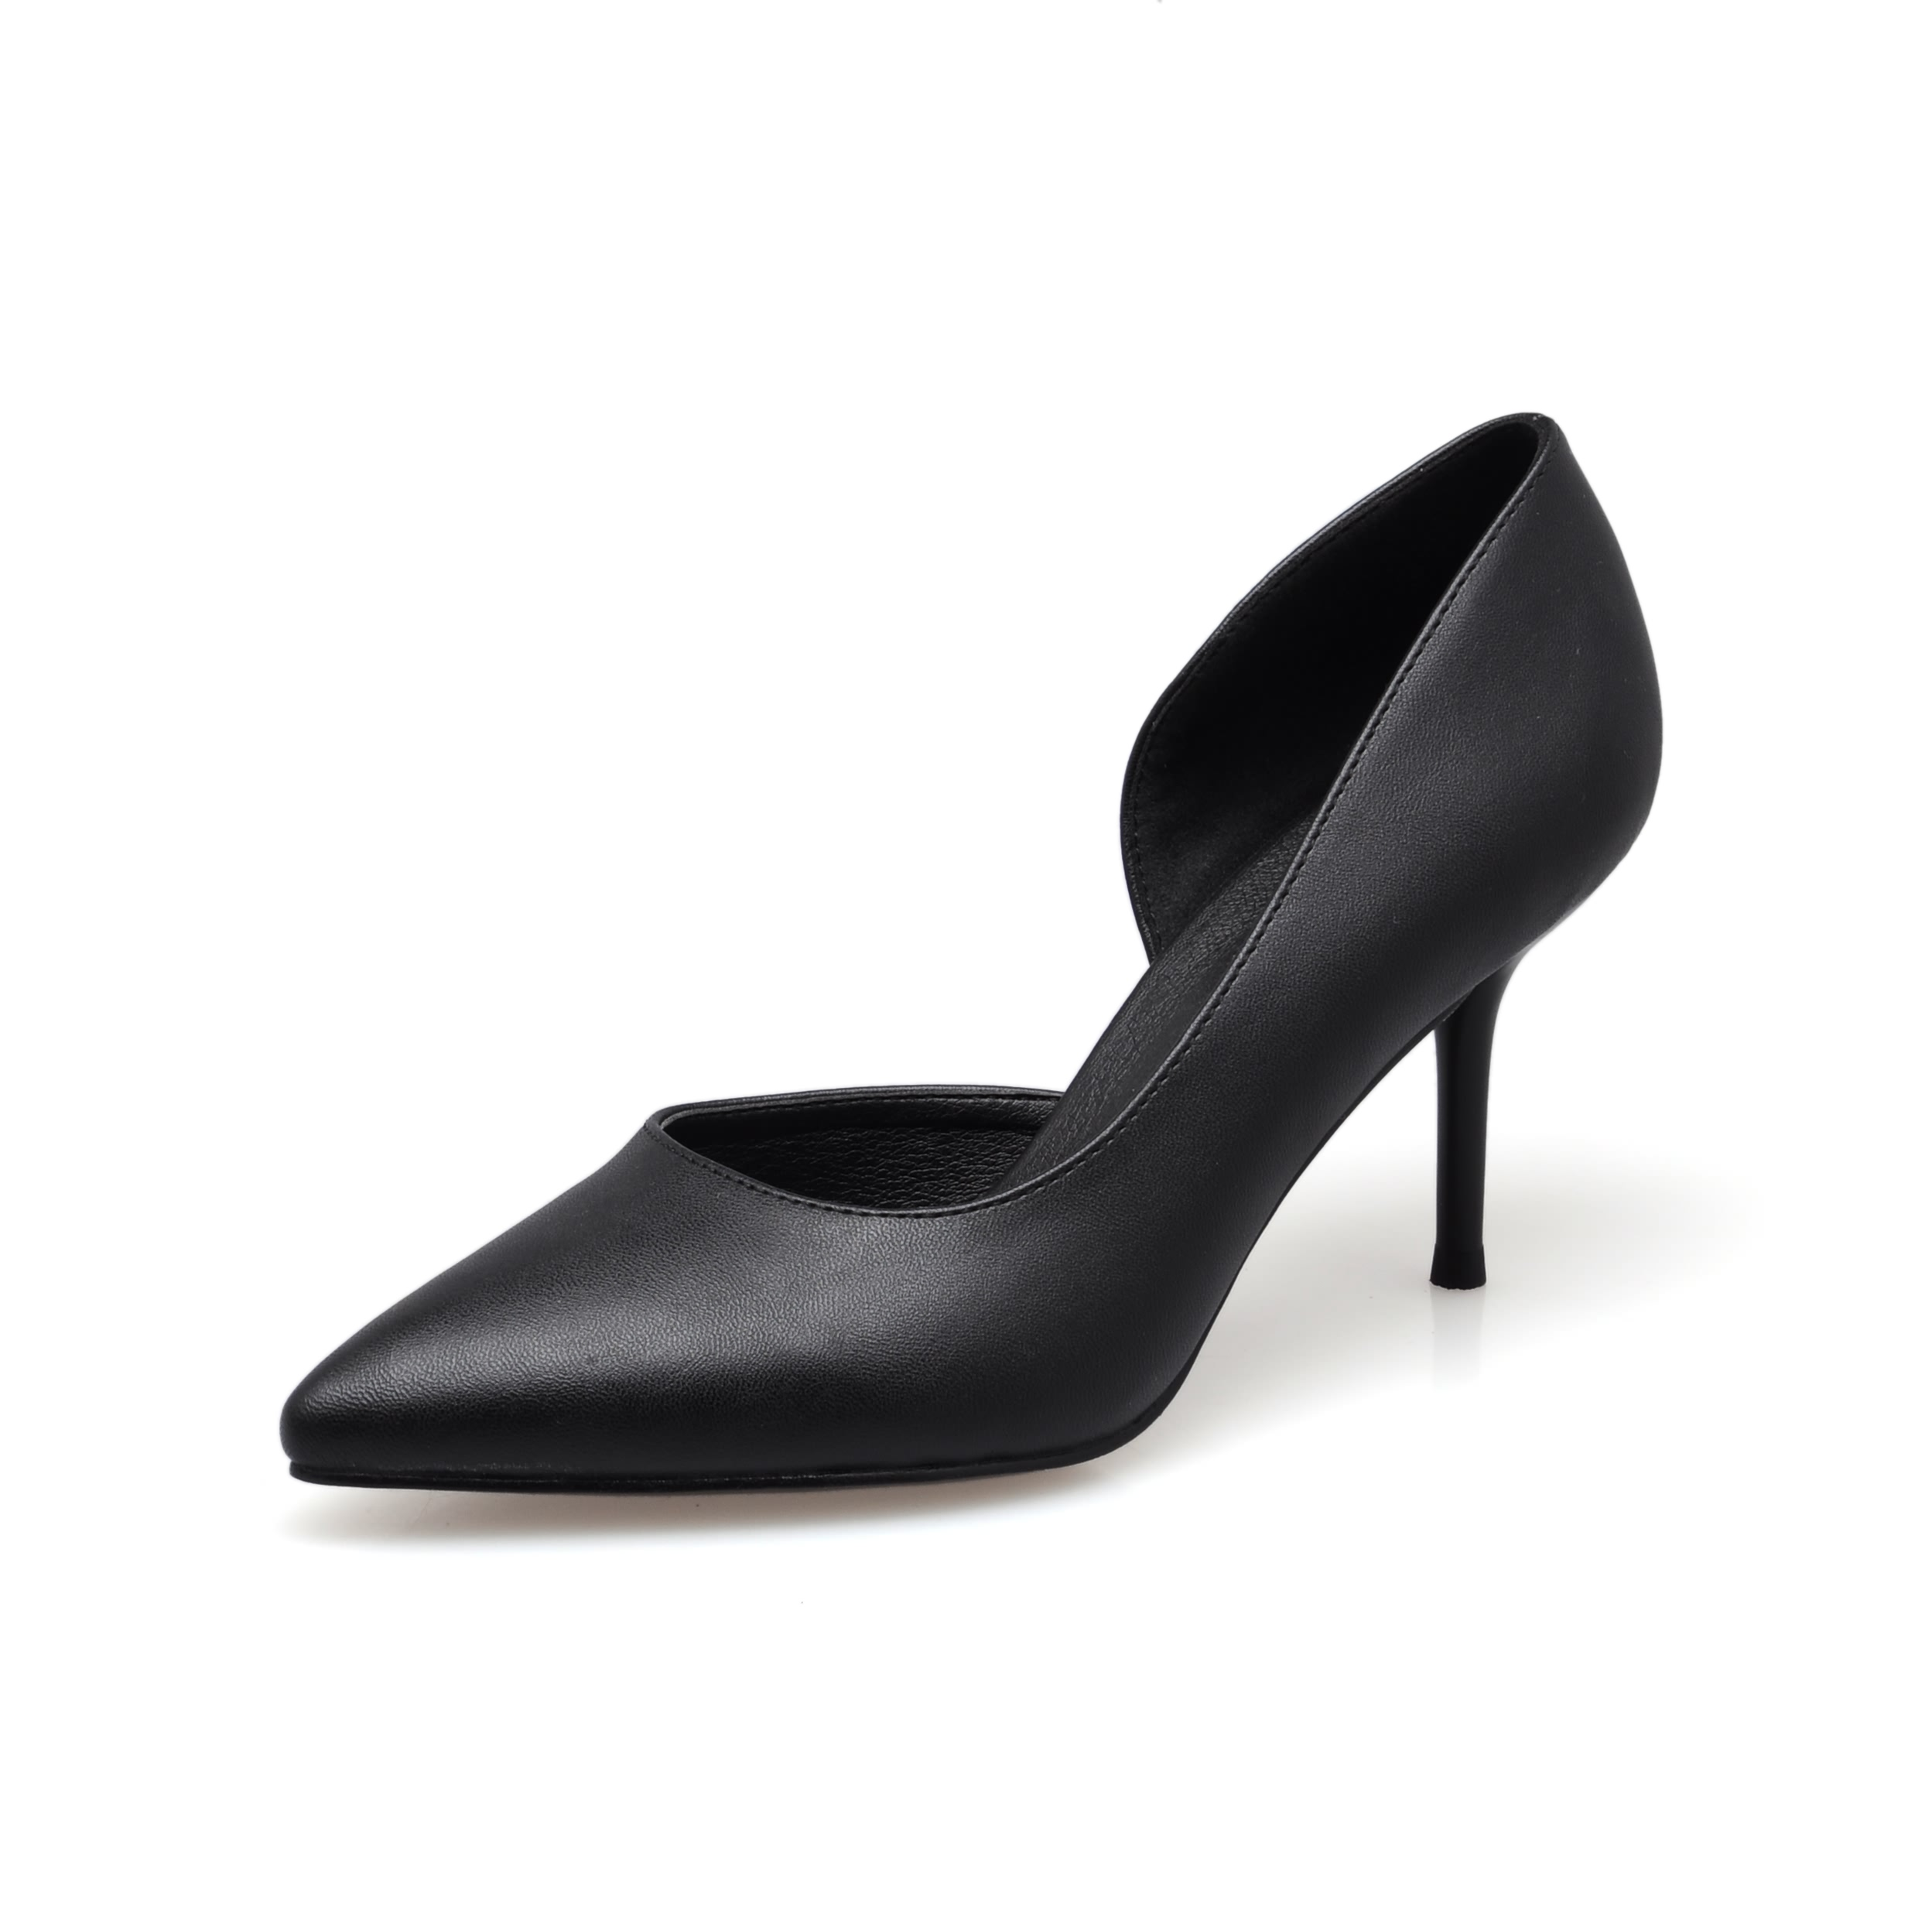 New Spring Summer Red High Heels Good Quality Pointed Toe Women Lady Solid Simple Casual Genuine Leather Pumps Shoes SMYBK-063 fashion new spring summer med high heels good quality pointed toe women lady flock leather solid simple sexy casual pumps shoes